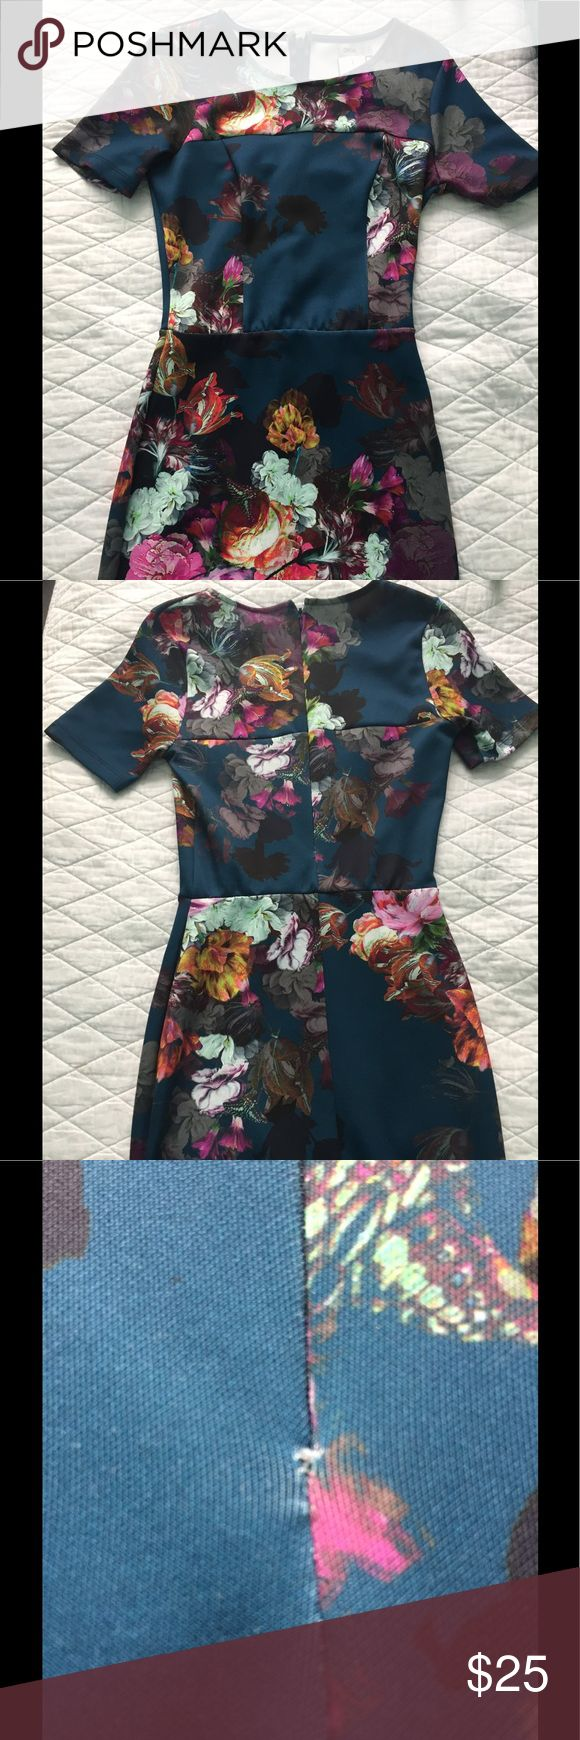 "🆕 ASOS FLORAL DRESS Brand new! Never worn! Cute midi navy blue floral dress! Size 6. Length 39 1/2"". Zipper does not come down all the way down (looks like it was made that way) sign of stress as shown in third pic. Bought it like that. Make an offer! 😊 ASOS Dresses Midi"